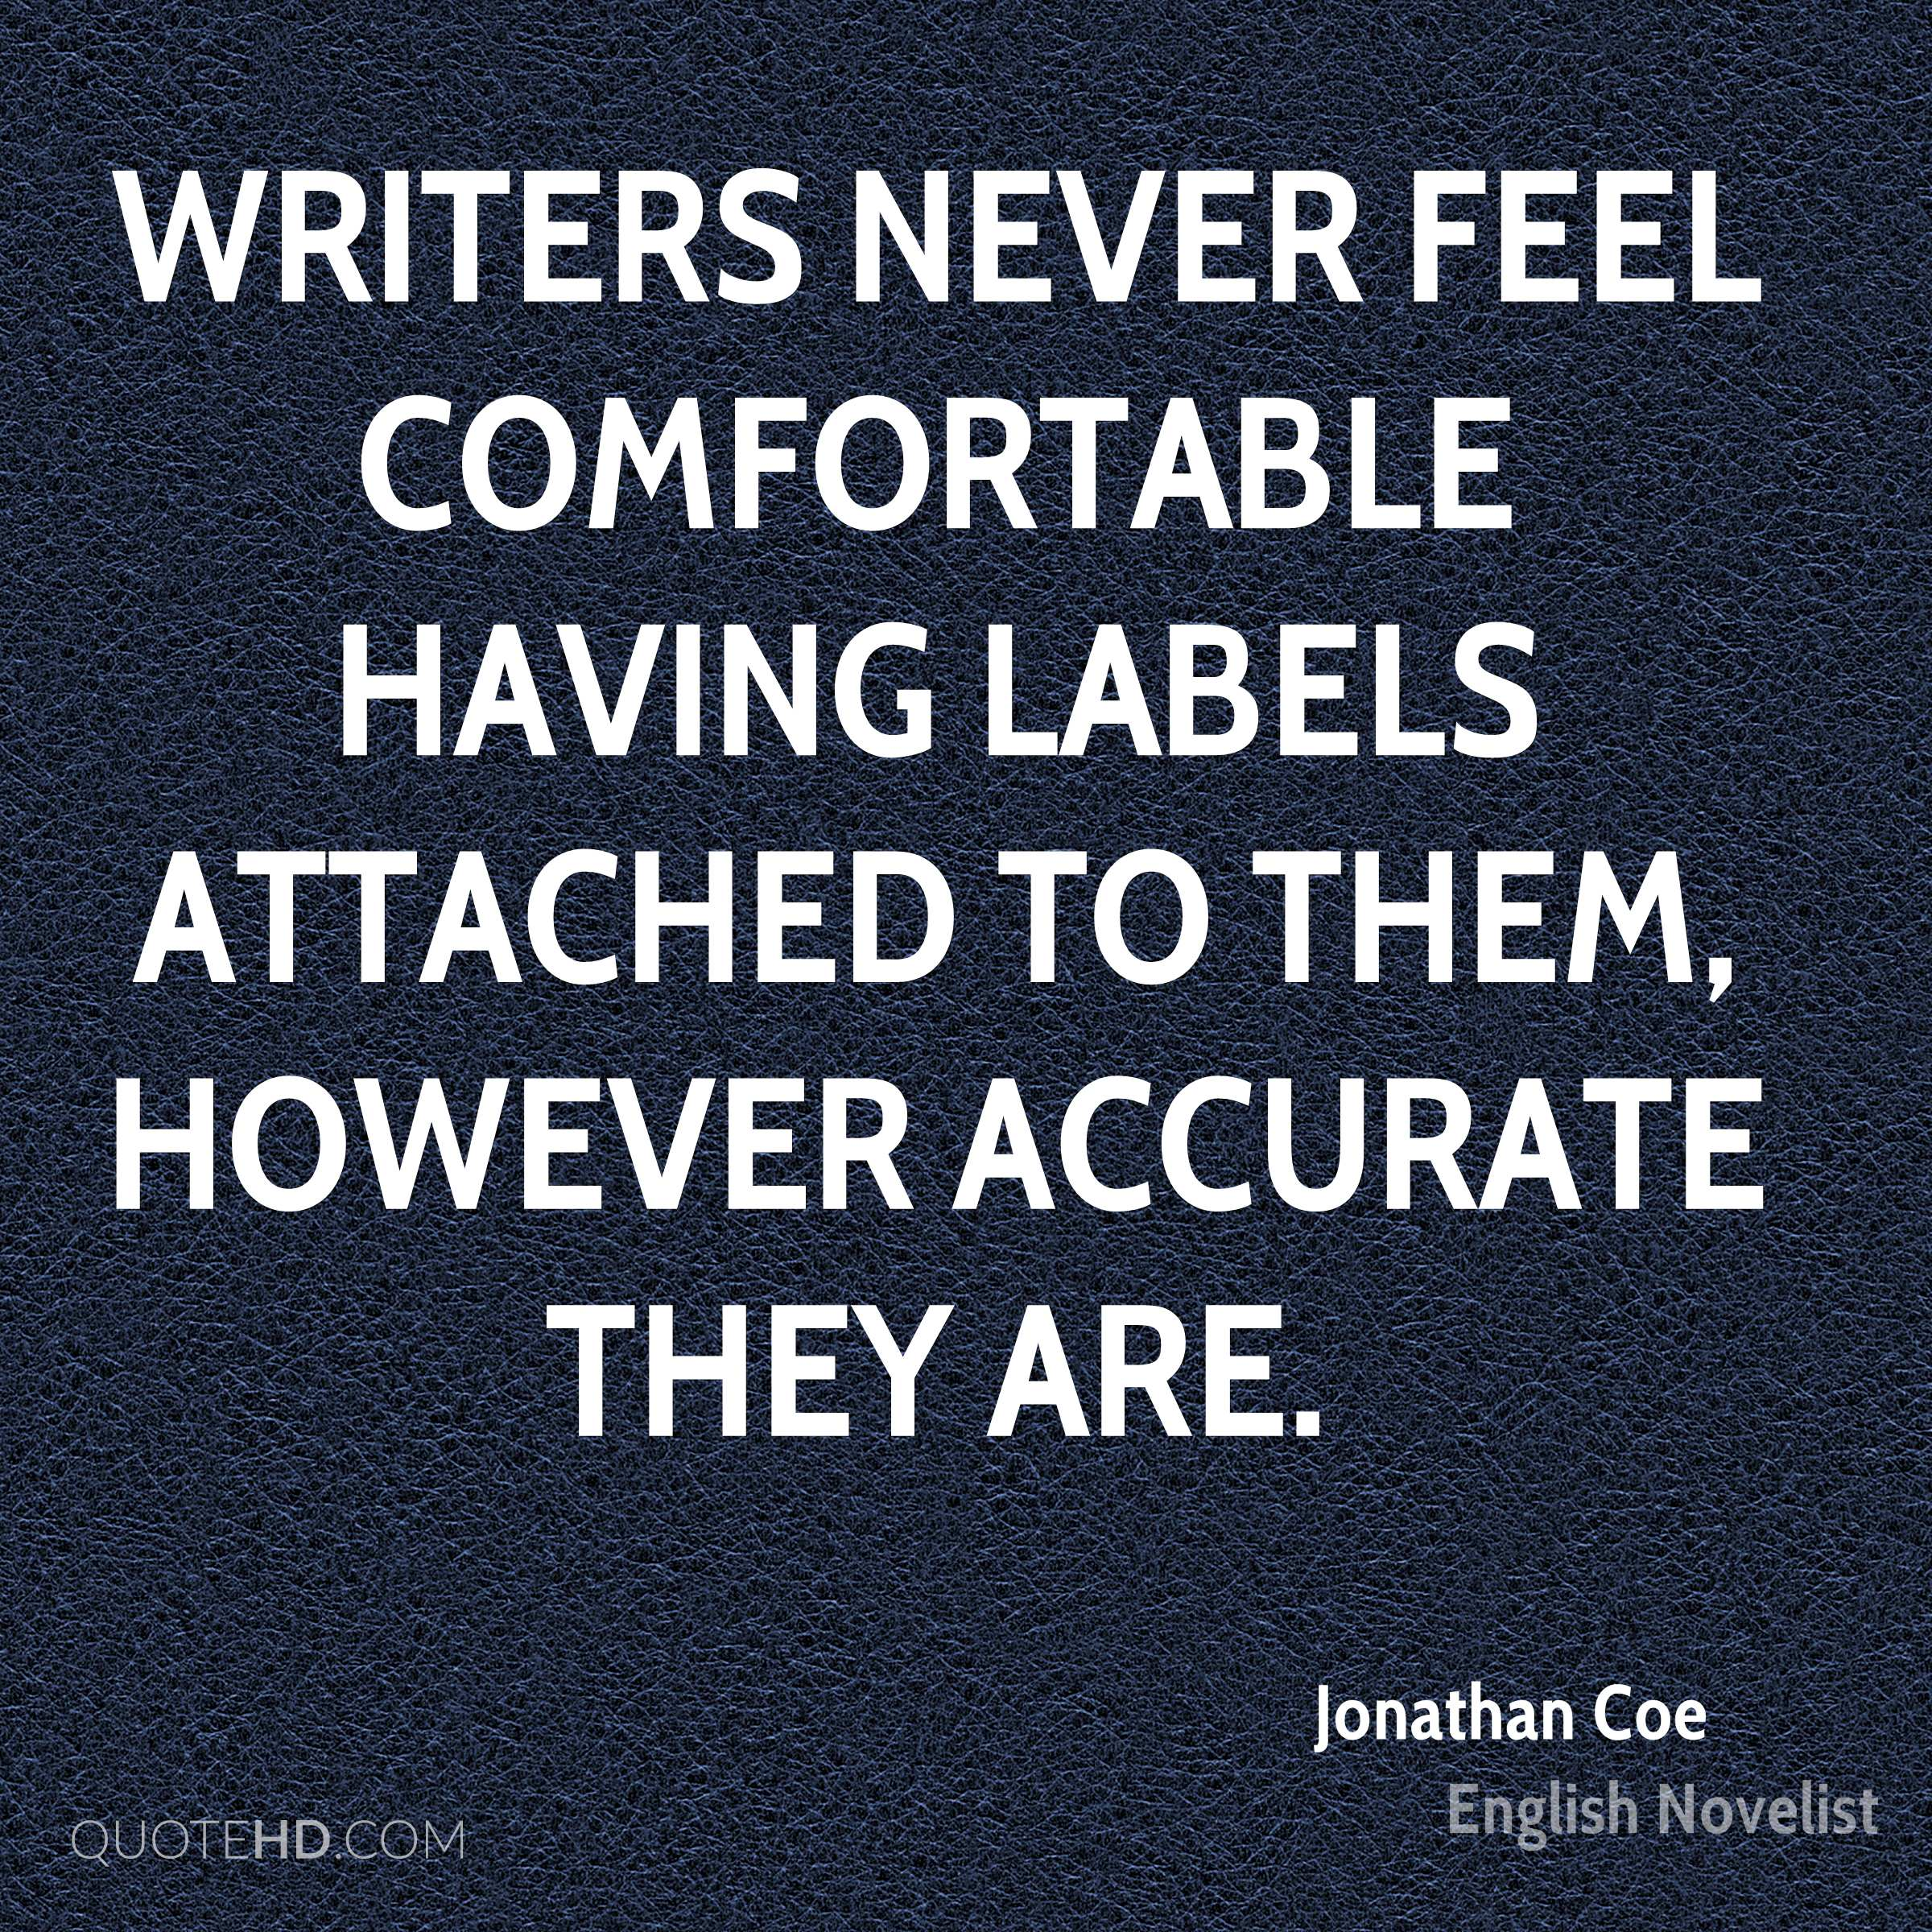 Writers never feel comfortable having labels attached to them, however accurate they are.